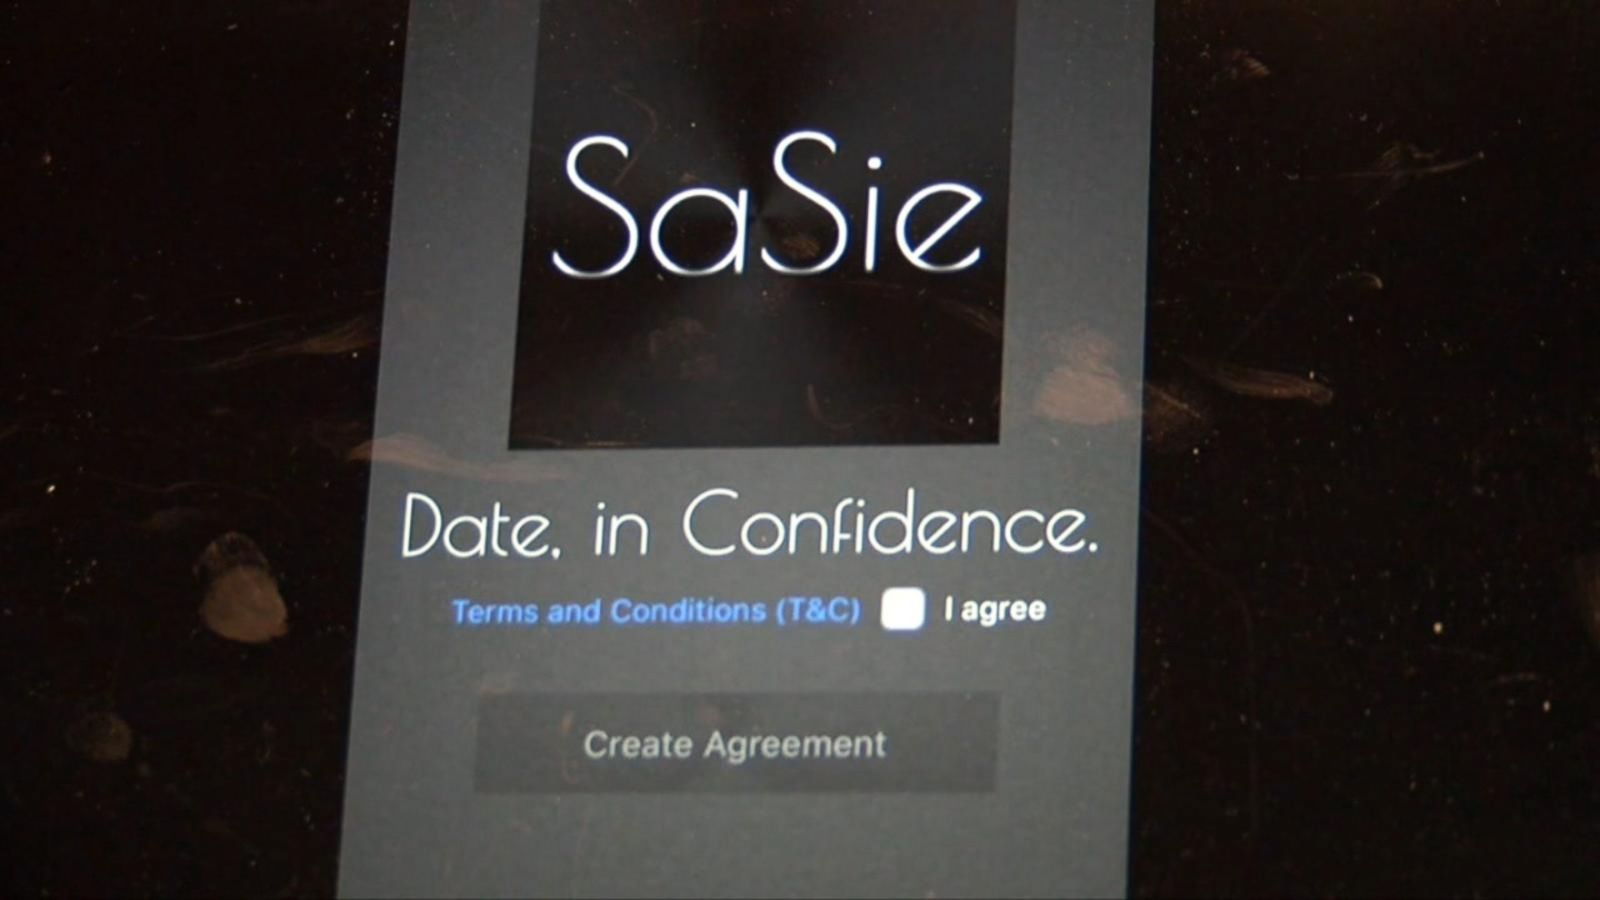 VIDEO: New Sexual Consent App Sparks Controversy